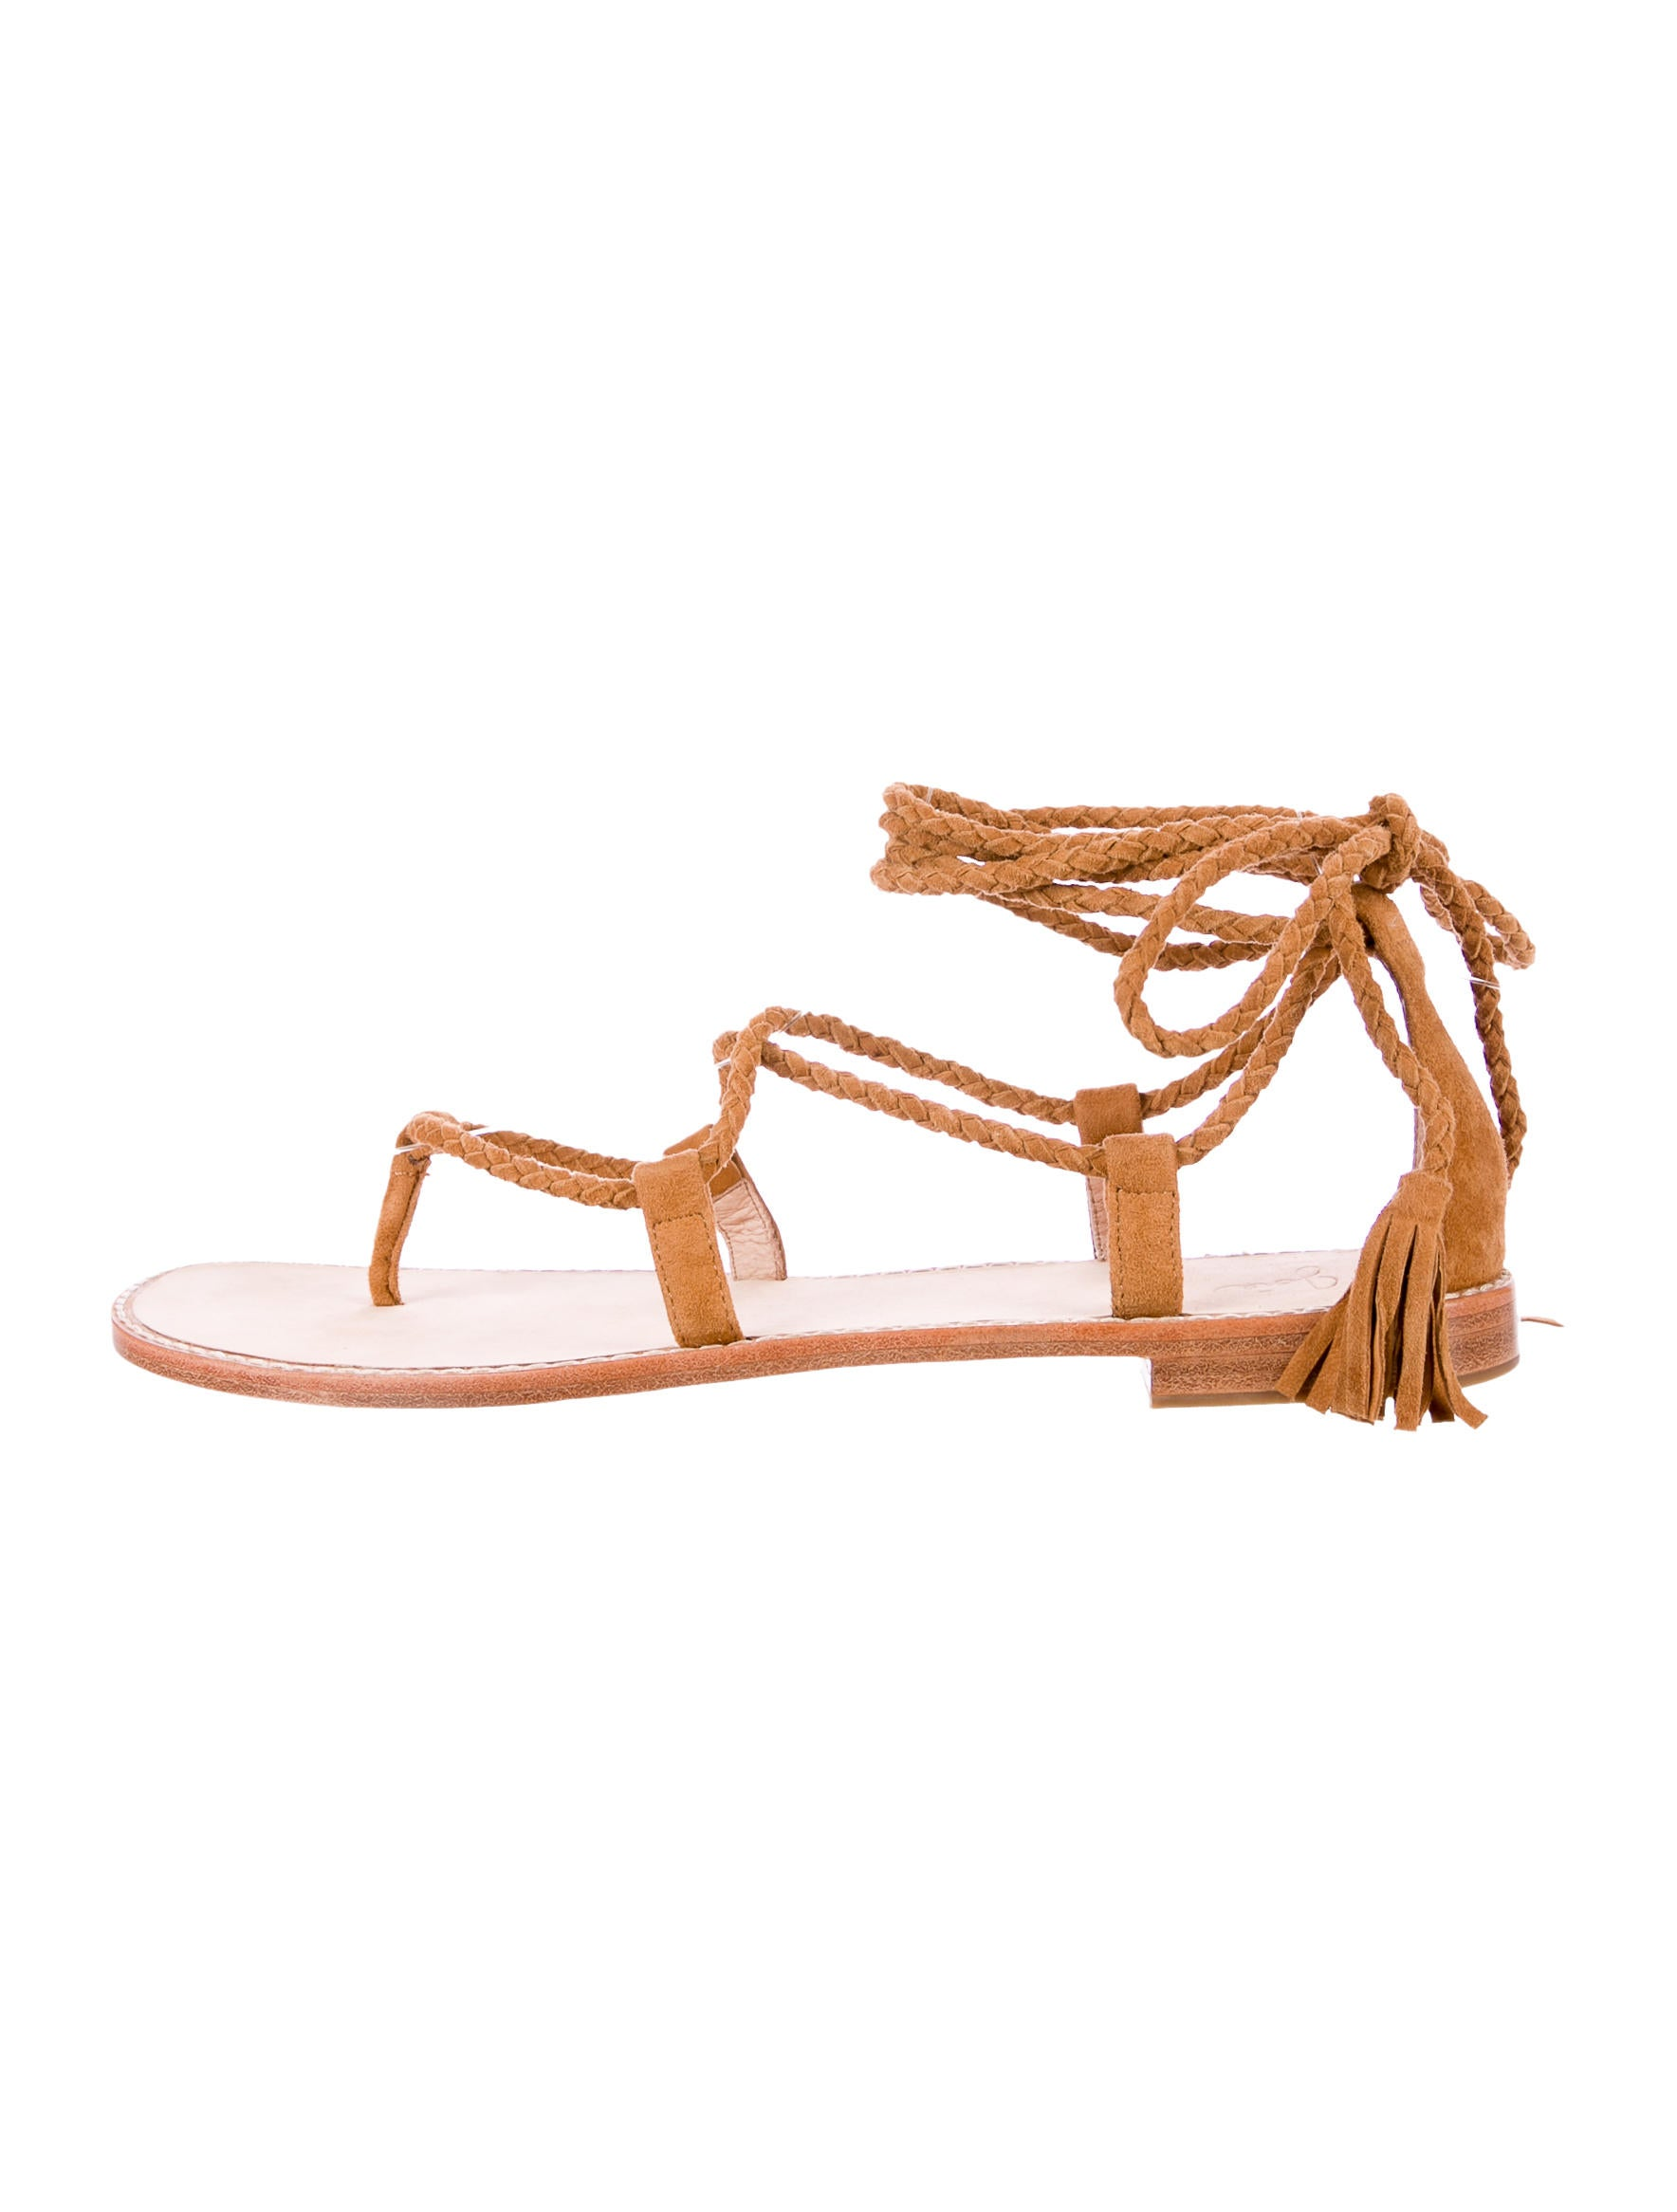 Joie Bailee Suede Sandals w/ Tags buy cheap how much latest collections sale online real sale online great deals for sale free shipping amazing price AEcgxgoh